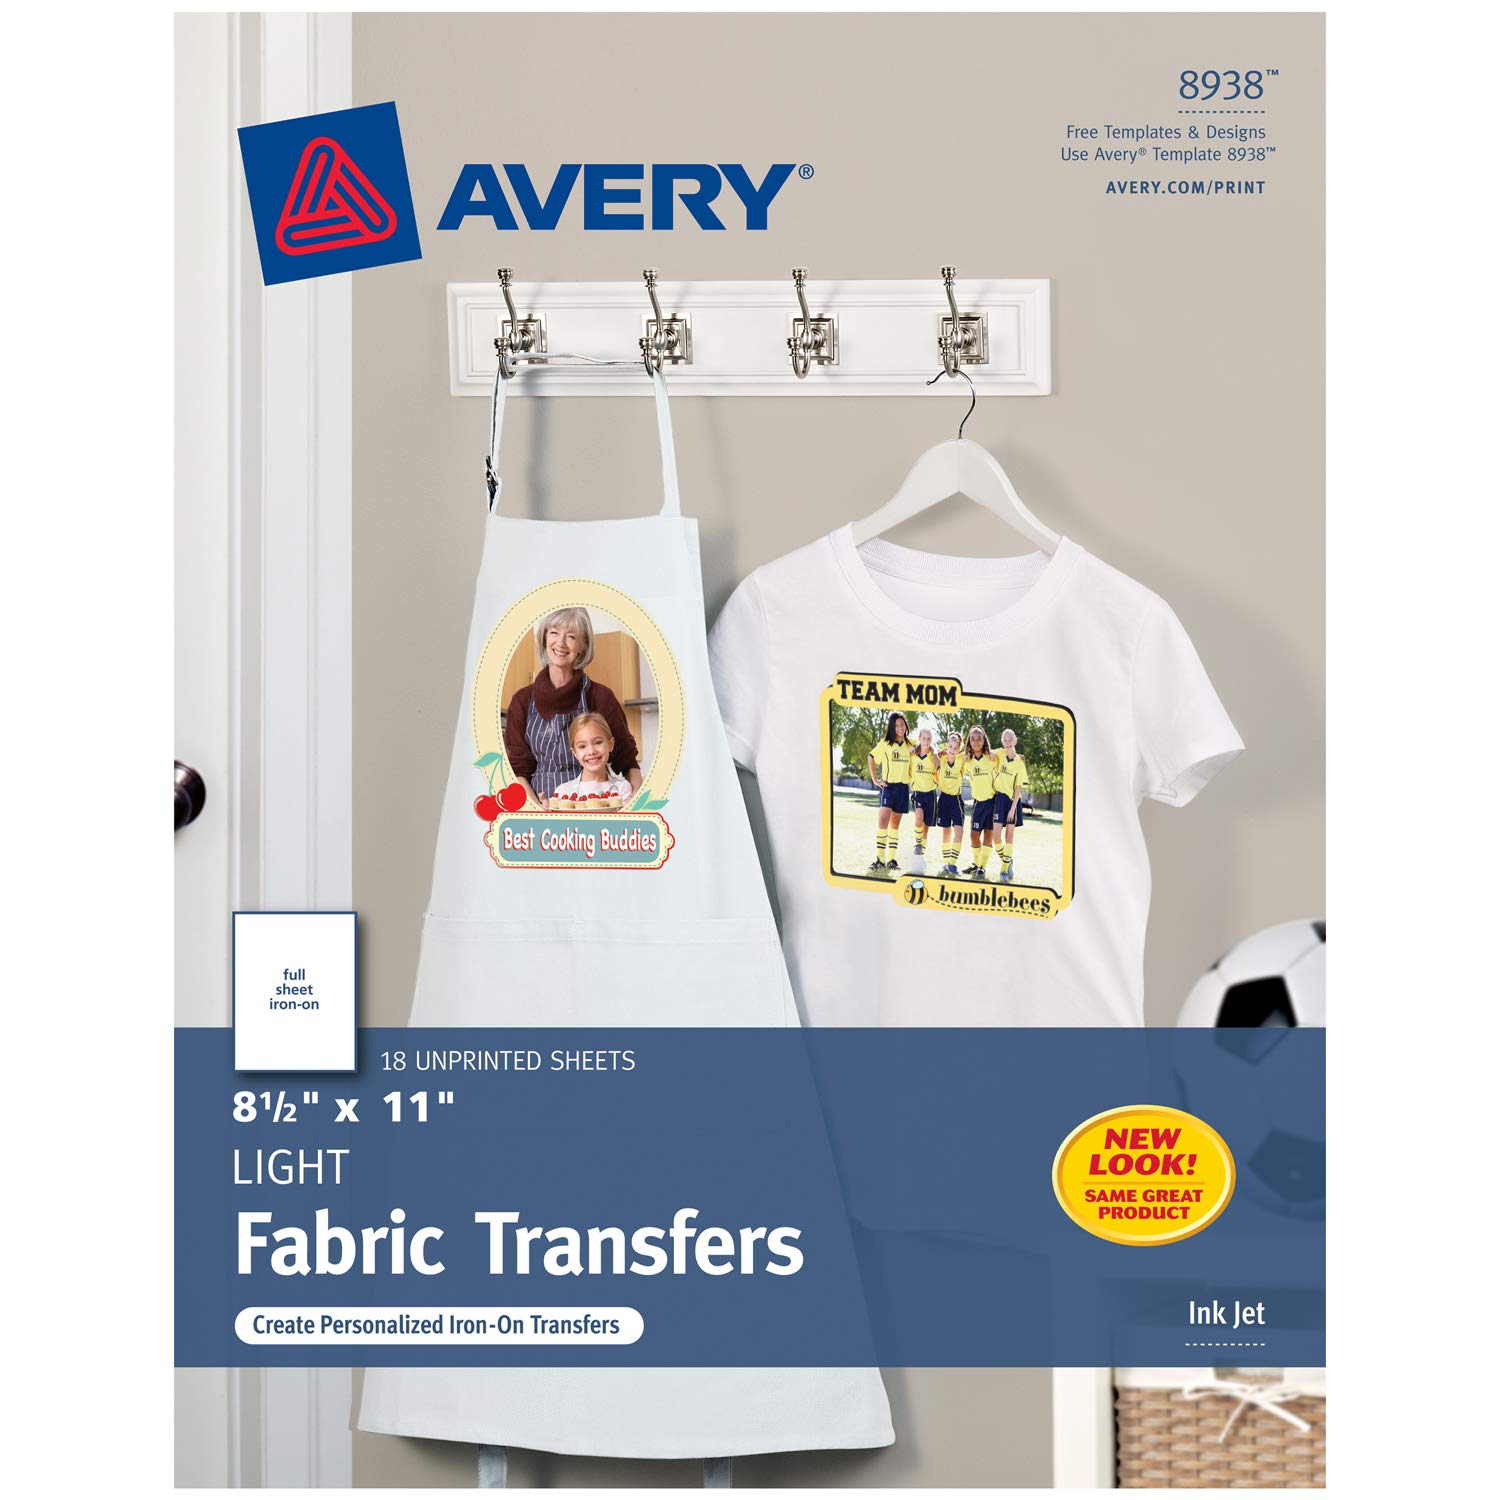 Avery Printable T-Shirt Transfers, For Use on Light Fabrics, Inkjet Printers, 18 Paper Transfers (8938) by AVERY